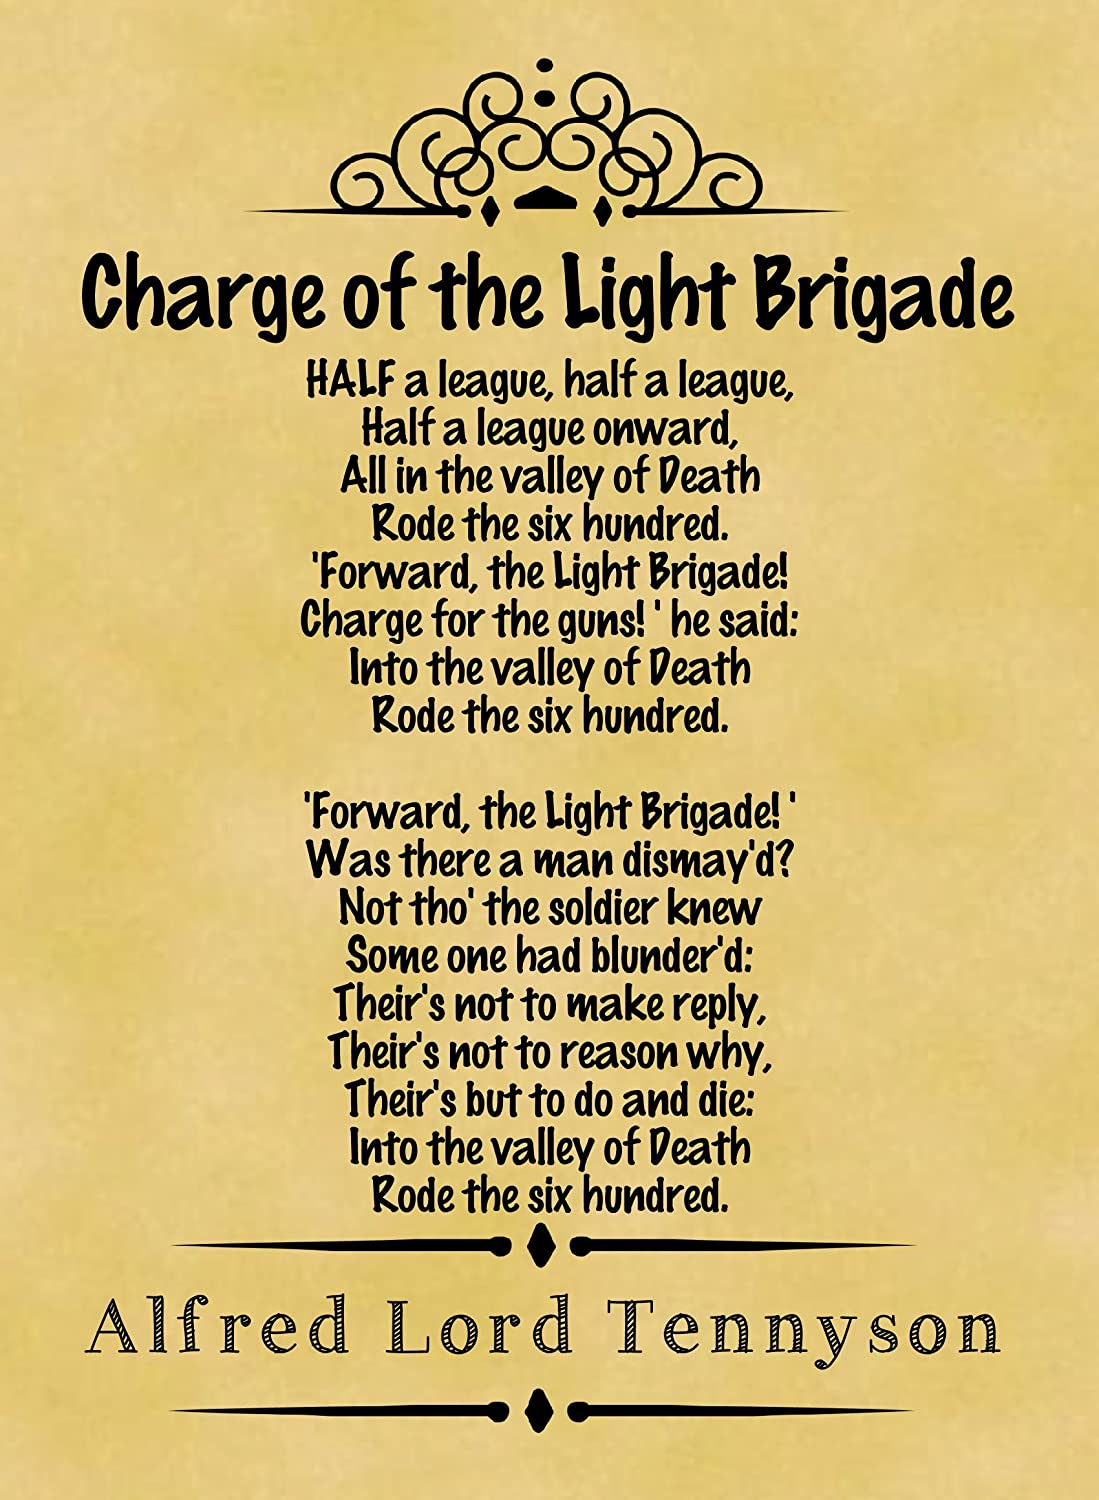 Image result for poem charge of the light brigade published